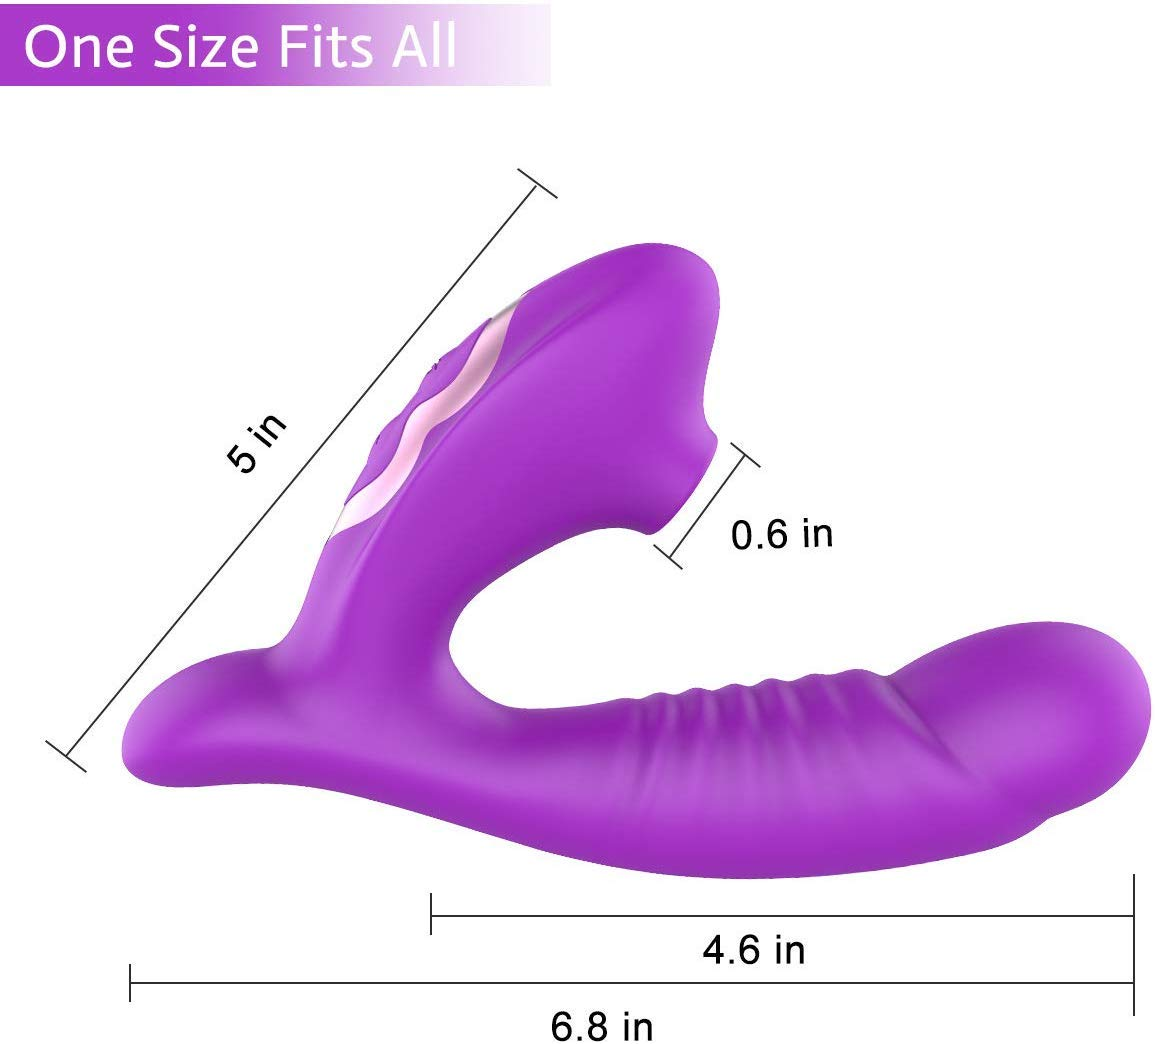 Clitoral Sucking Vibrator Stimulato Clitoris & G Spot Dildo,with 10 Suction & Vibration Patterns Waterproof Rechargeable Sex Toys for Women Couples